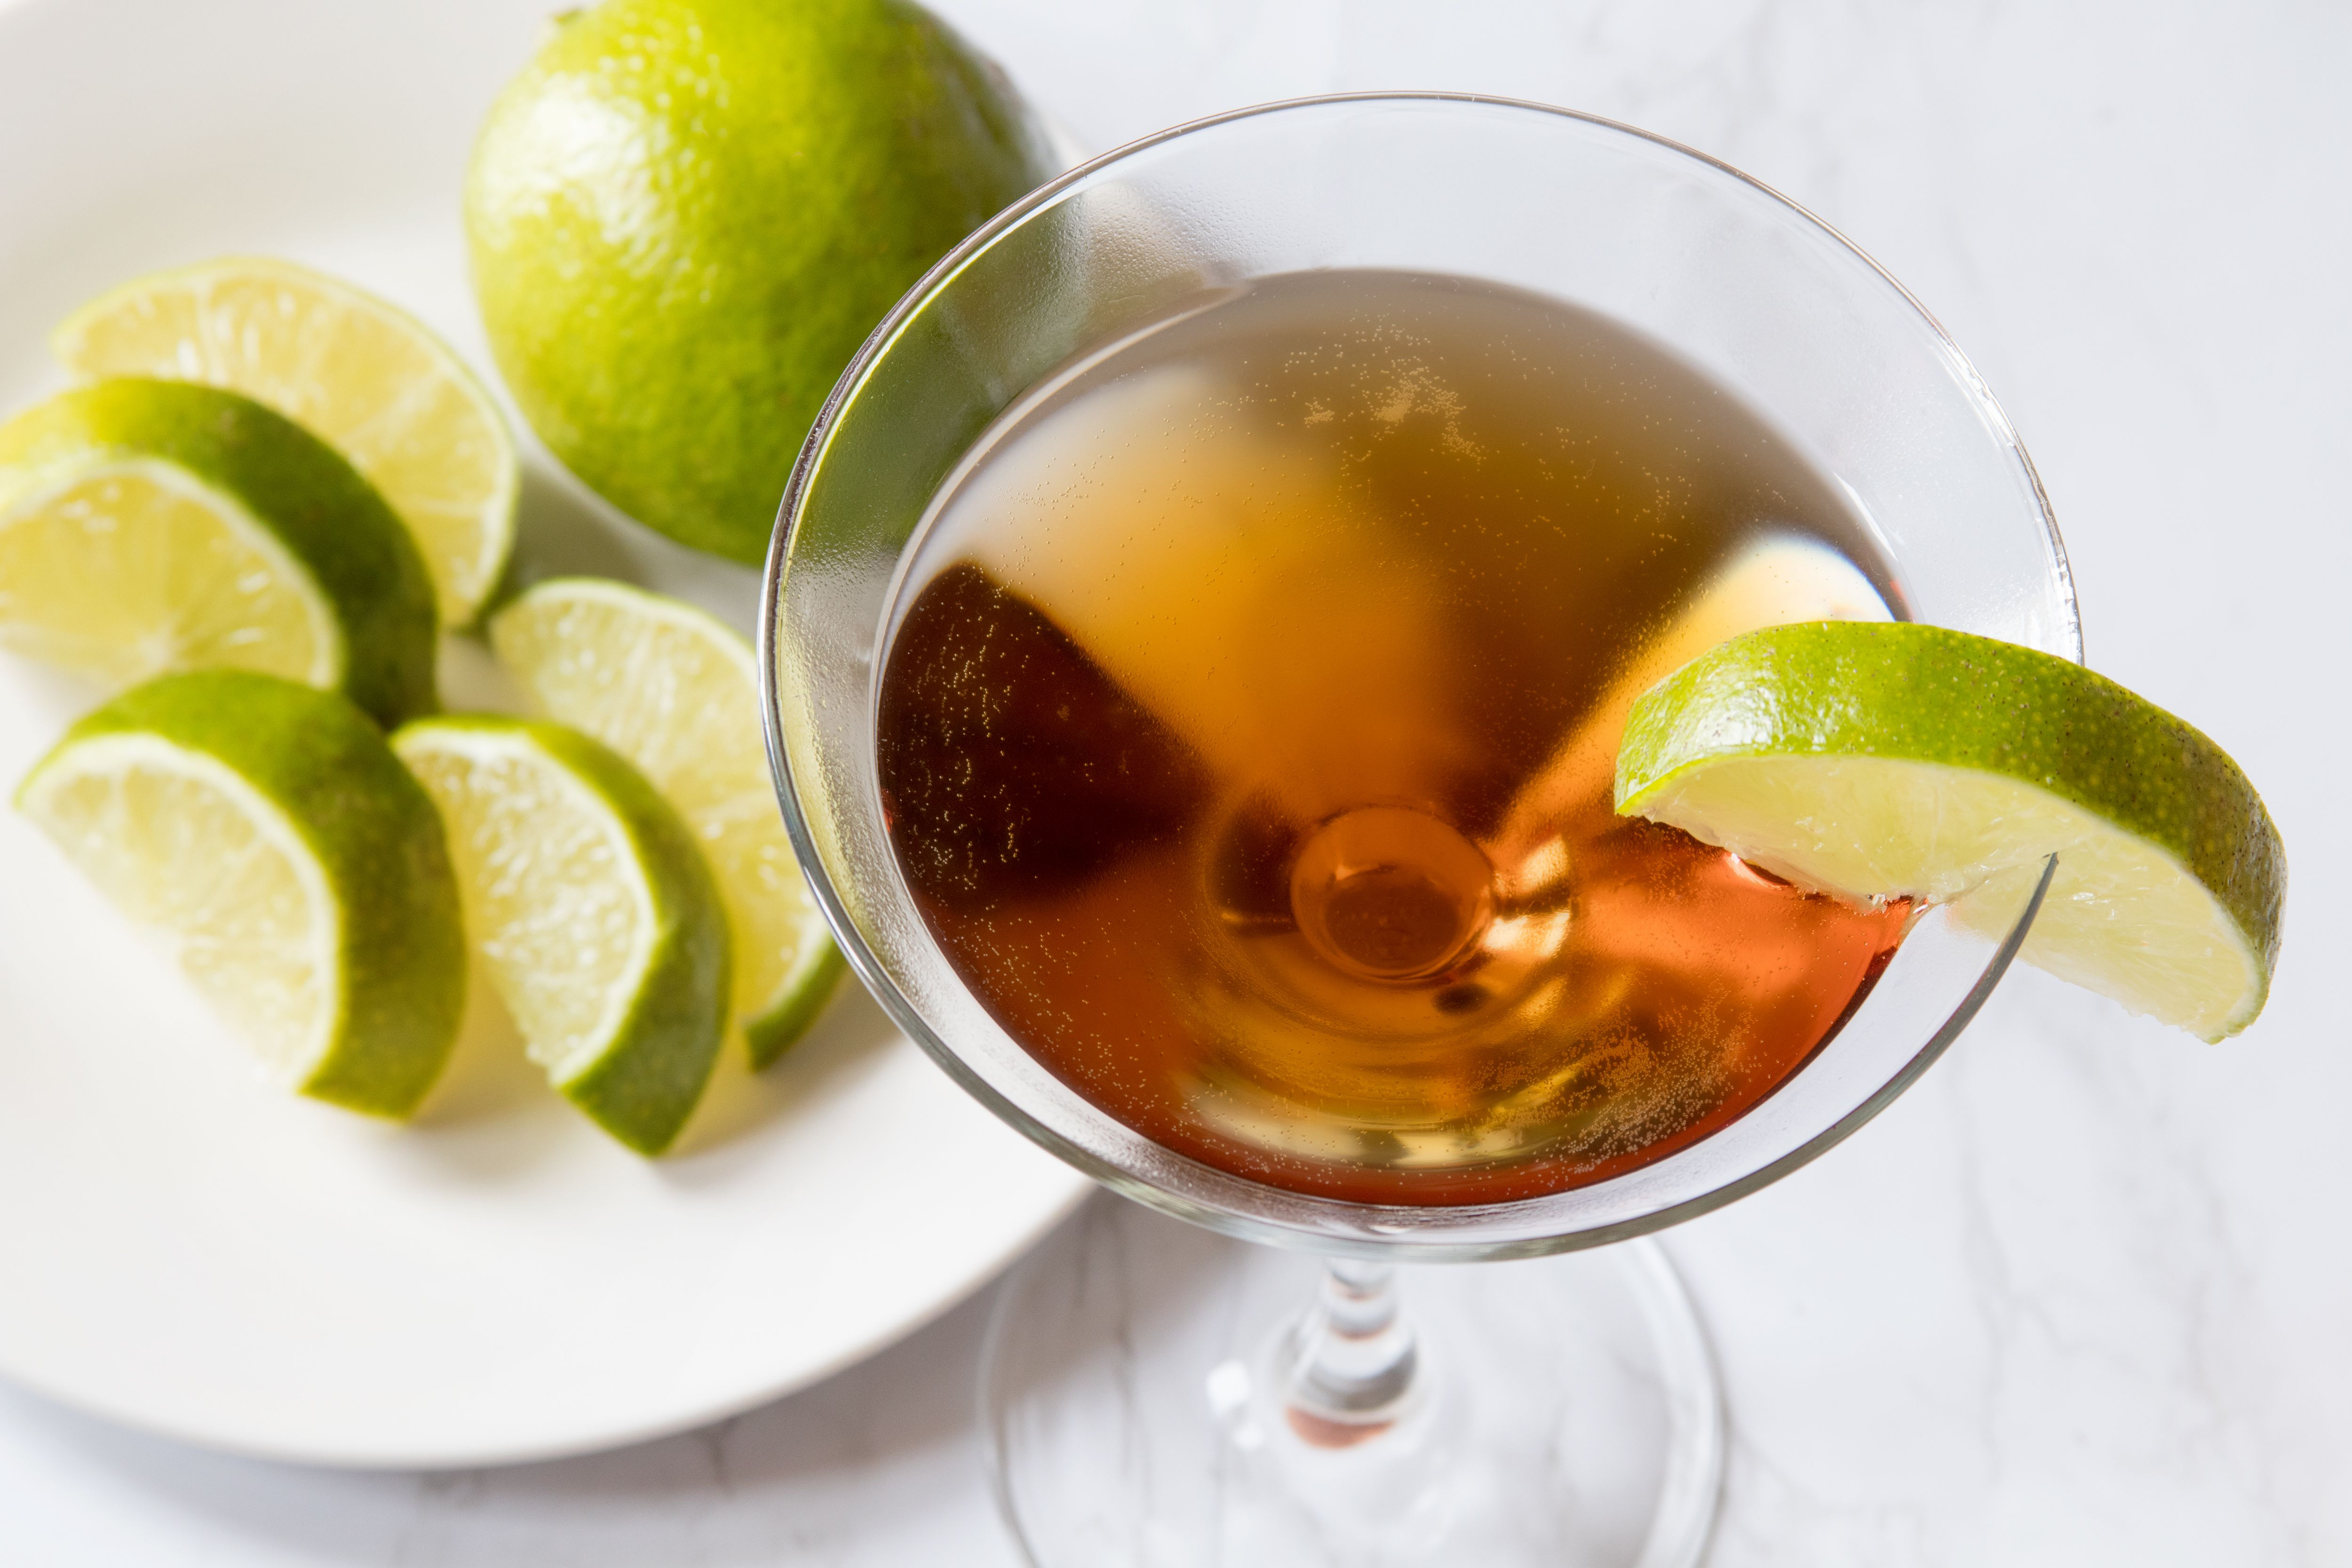 Embassy Cocktail Garnished With a Lime